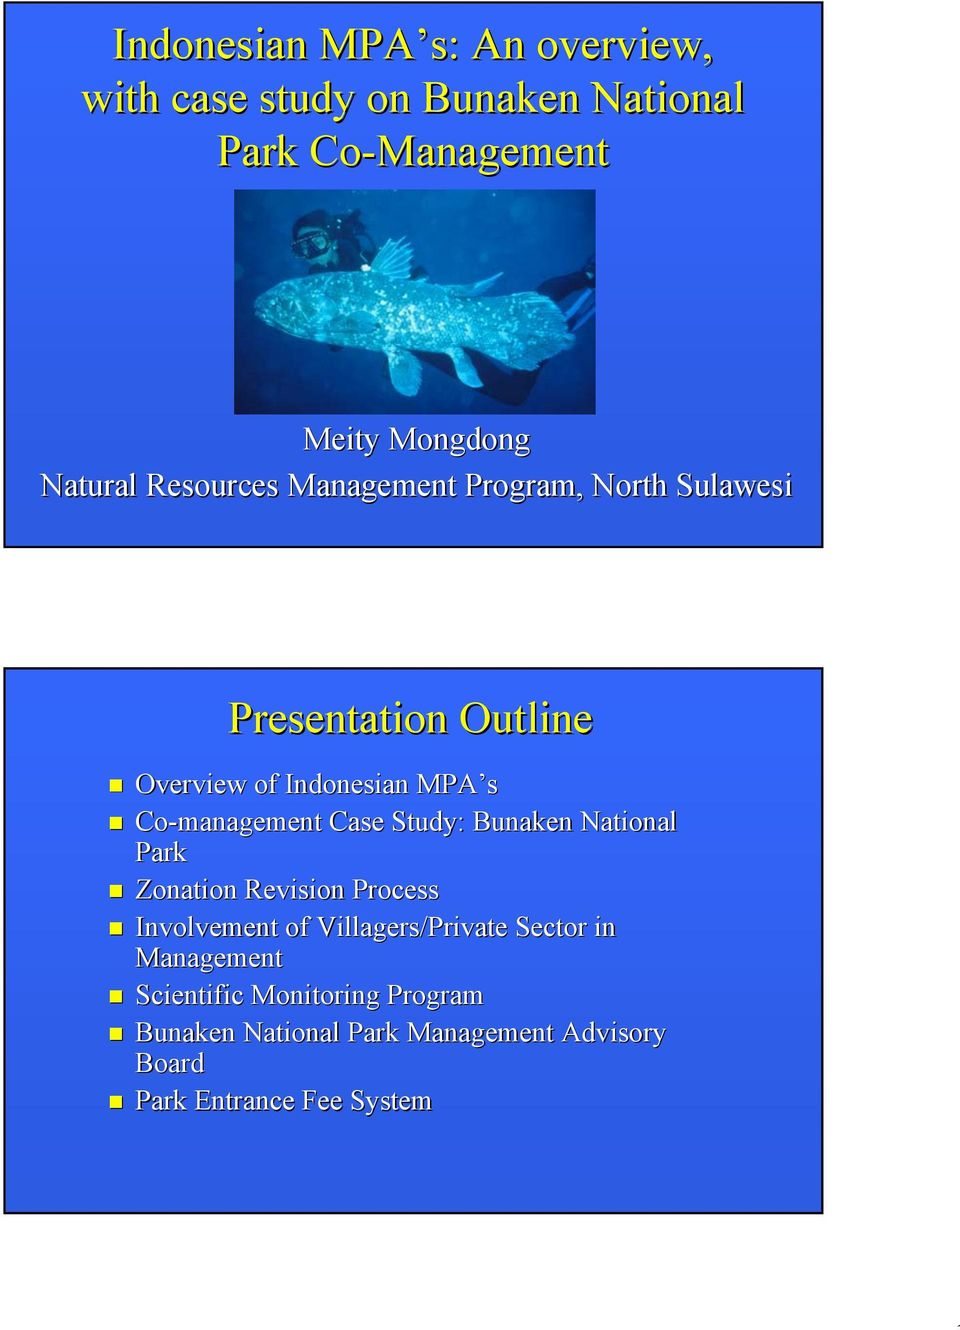 Co-management Case Study: Bunaken National Park Zonation Revision Process Involvement of Villagers/Private